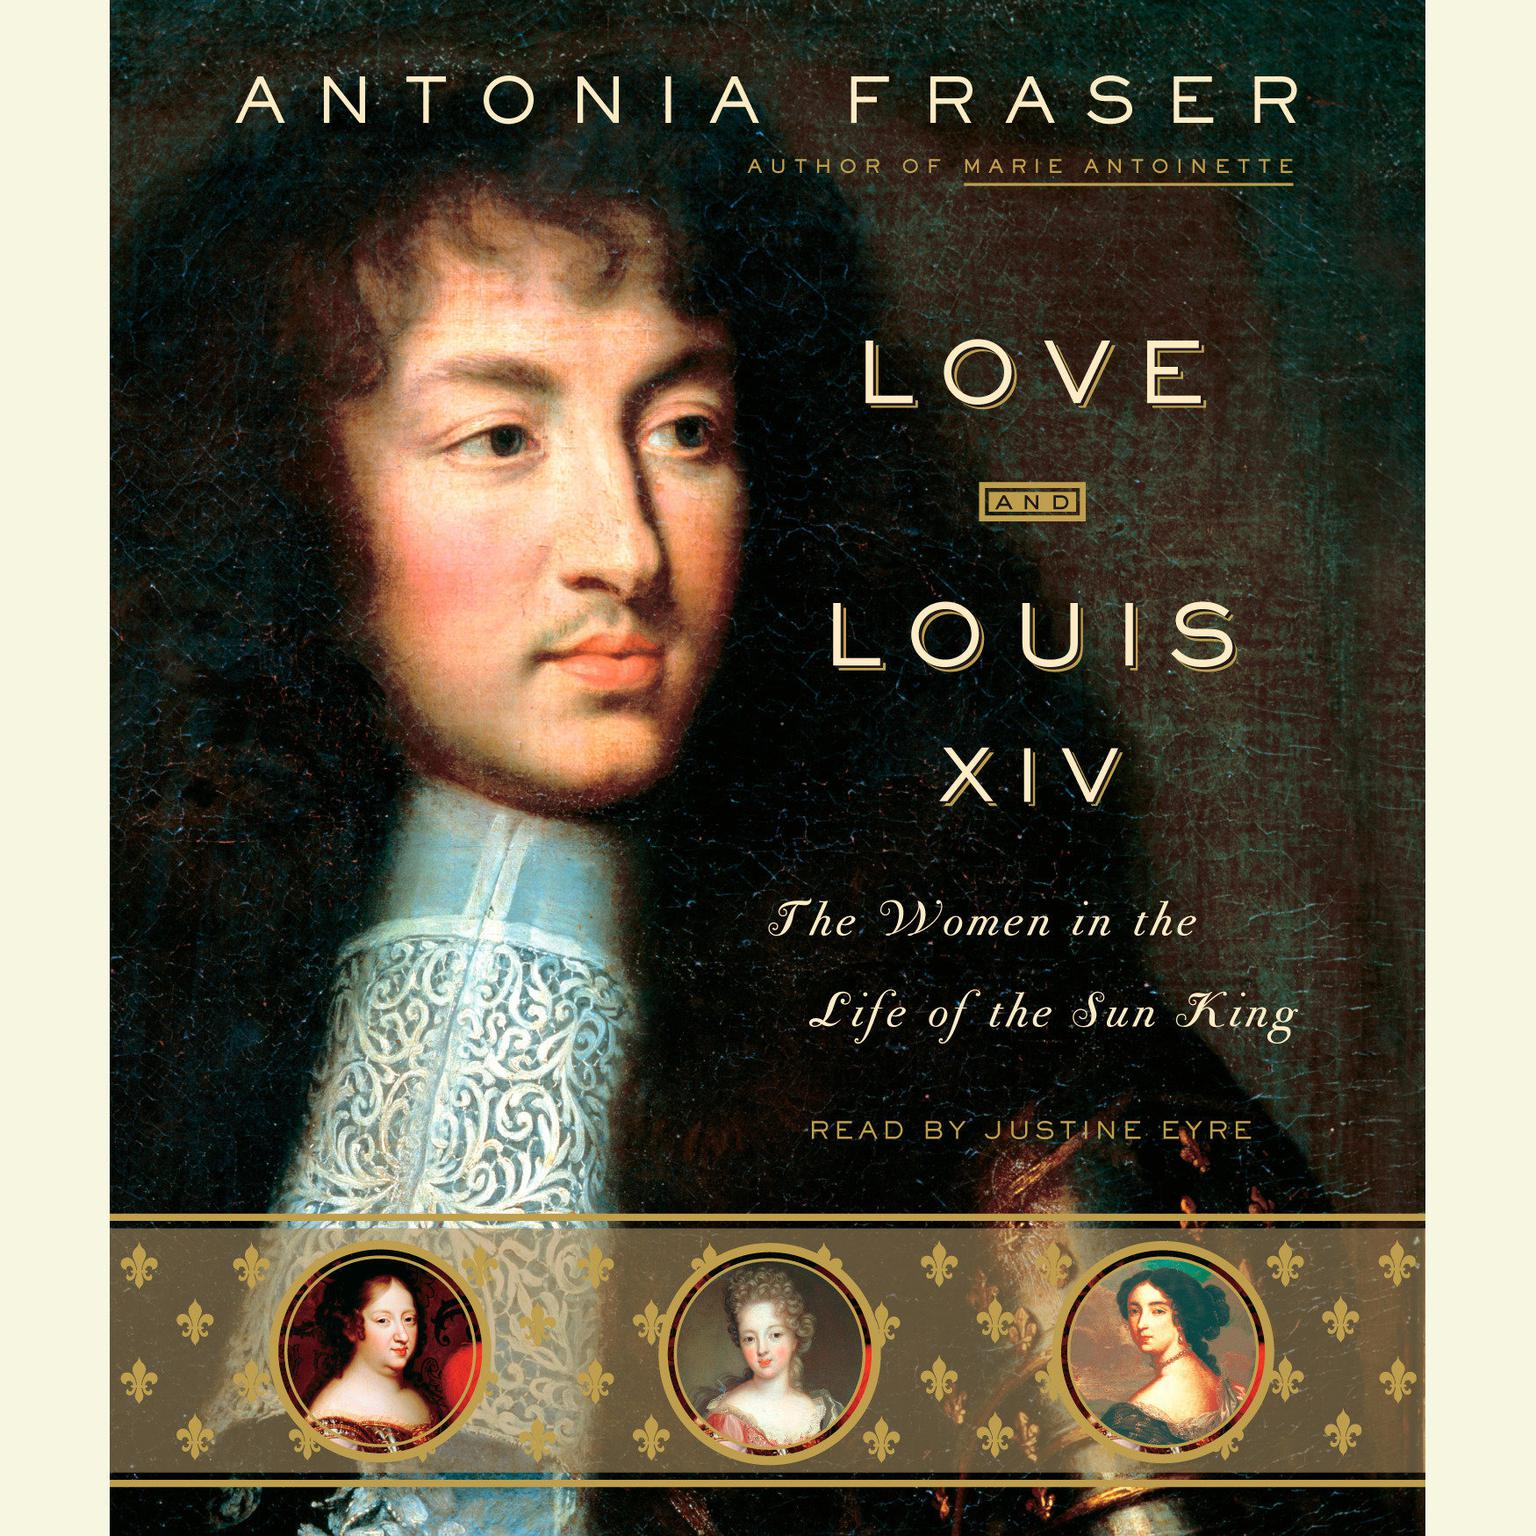 Love and Louis XIV: The Women in the Life of the Sun King Audiobook, by Antonia Fraser